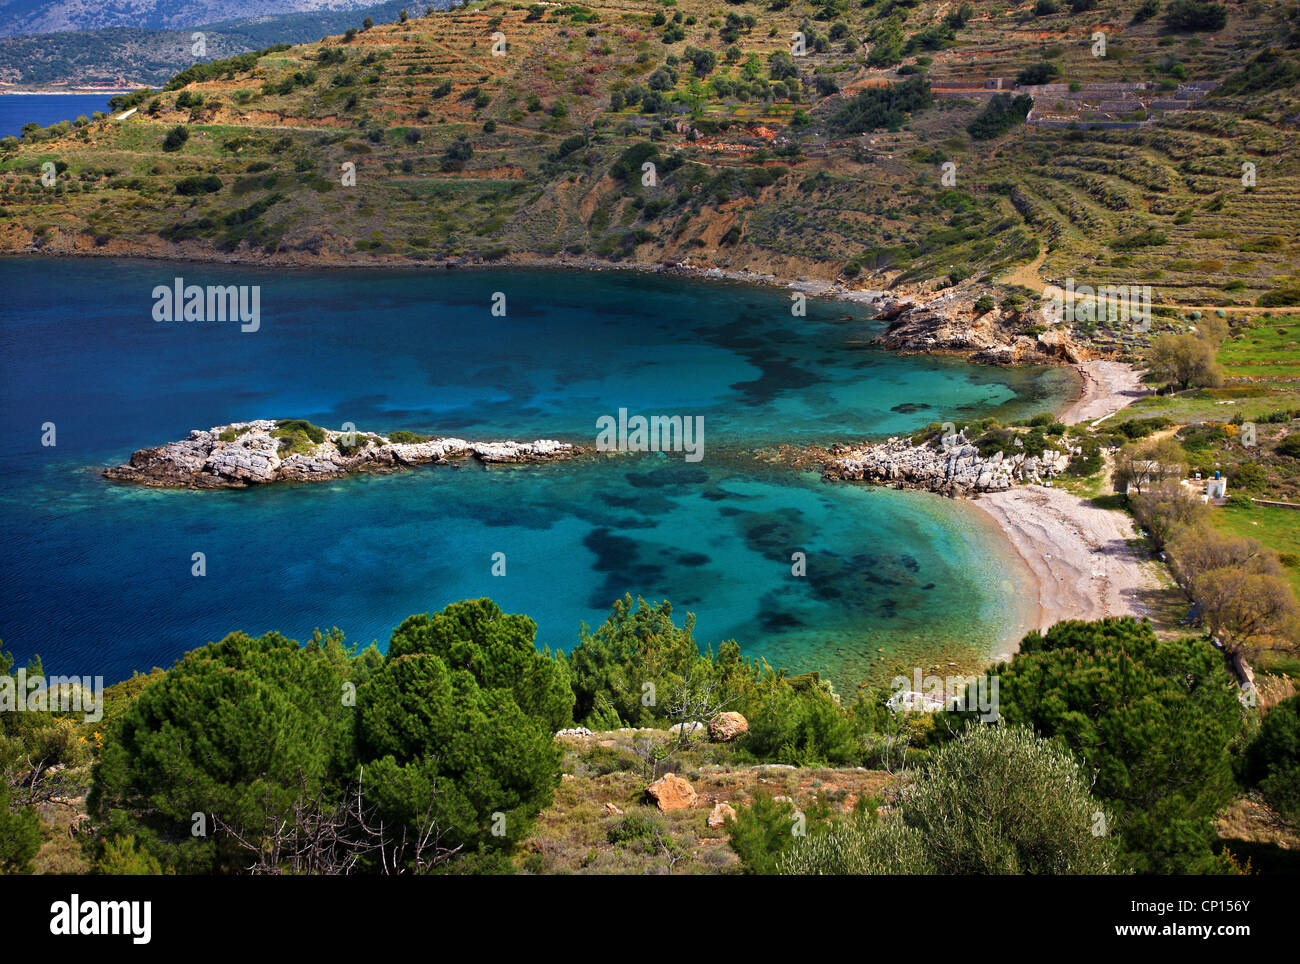 Didima (means 'twins') beach on the west side of Chios island, Northeast Aegean, Greece. - Stock Image